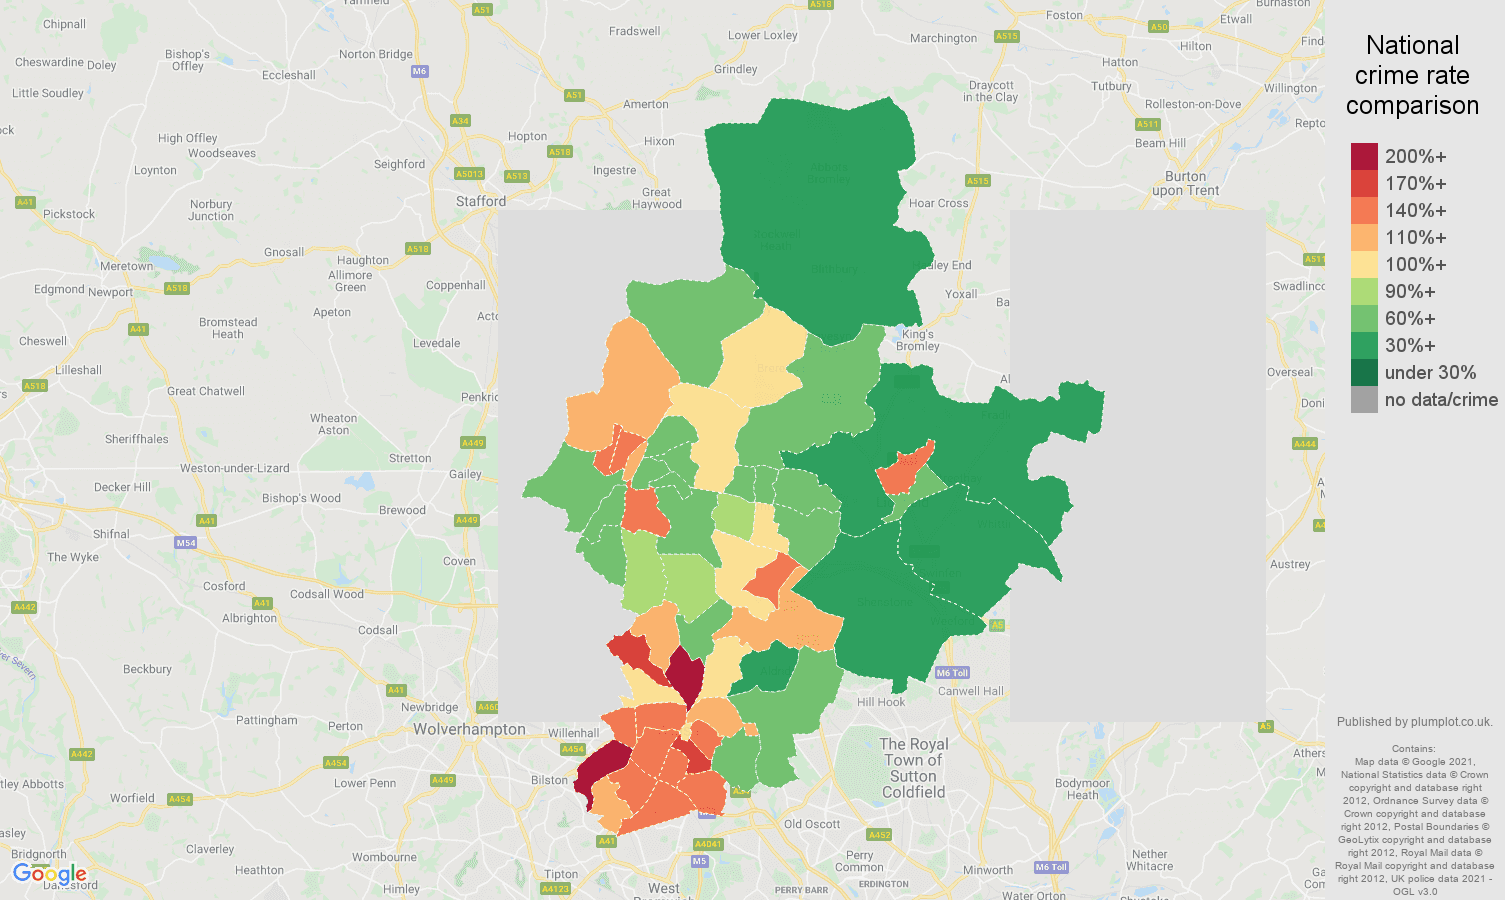 Walsall violent crime rate comparison map